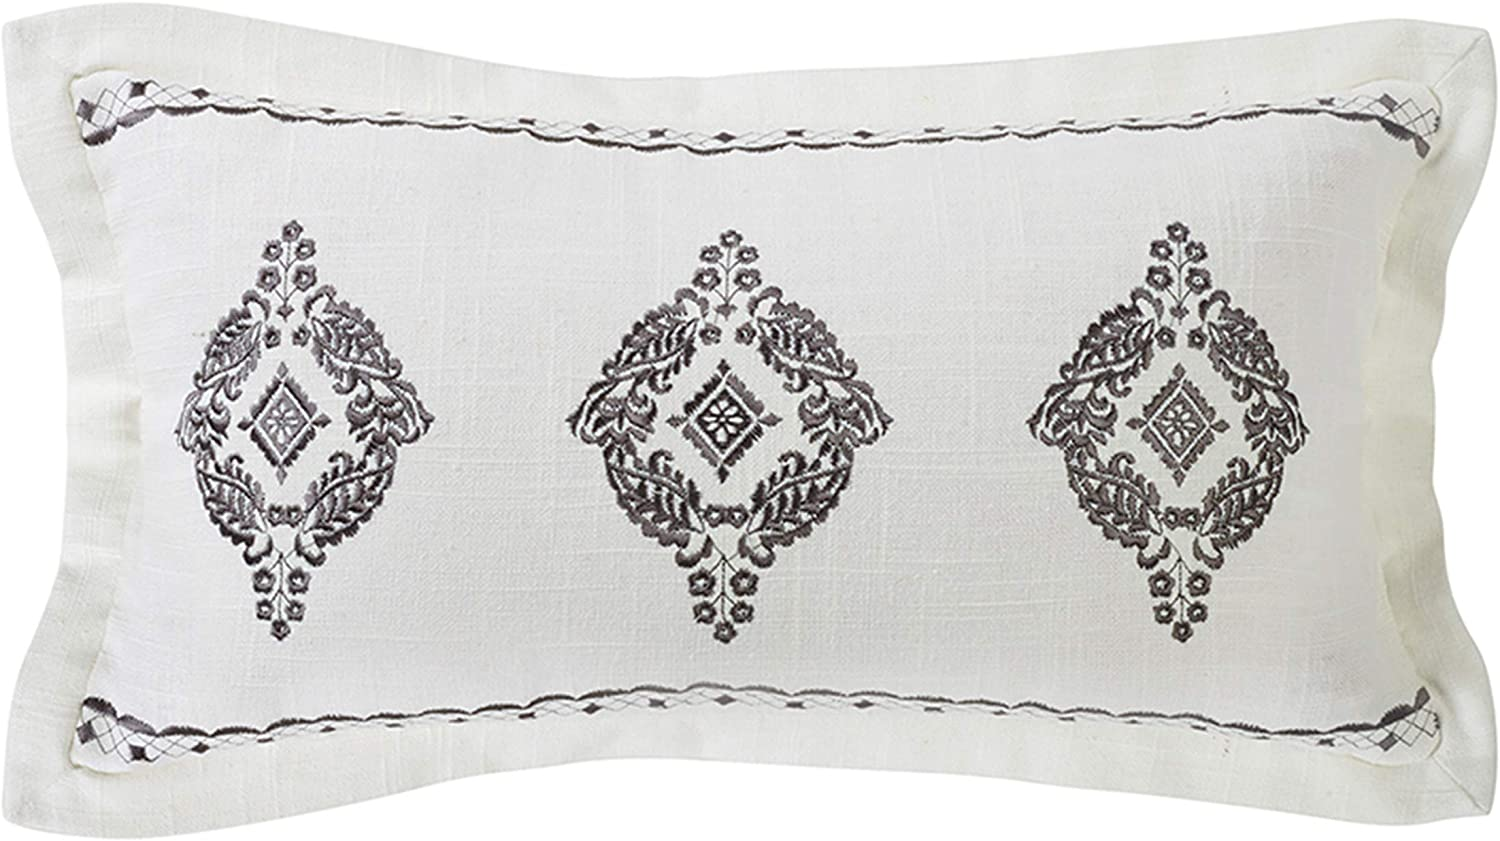 HiEnd Accents Oblong Many popular brands Grey Embroidered Lace Fl Design Detroit Mall Pillow with